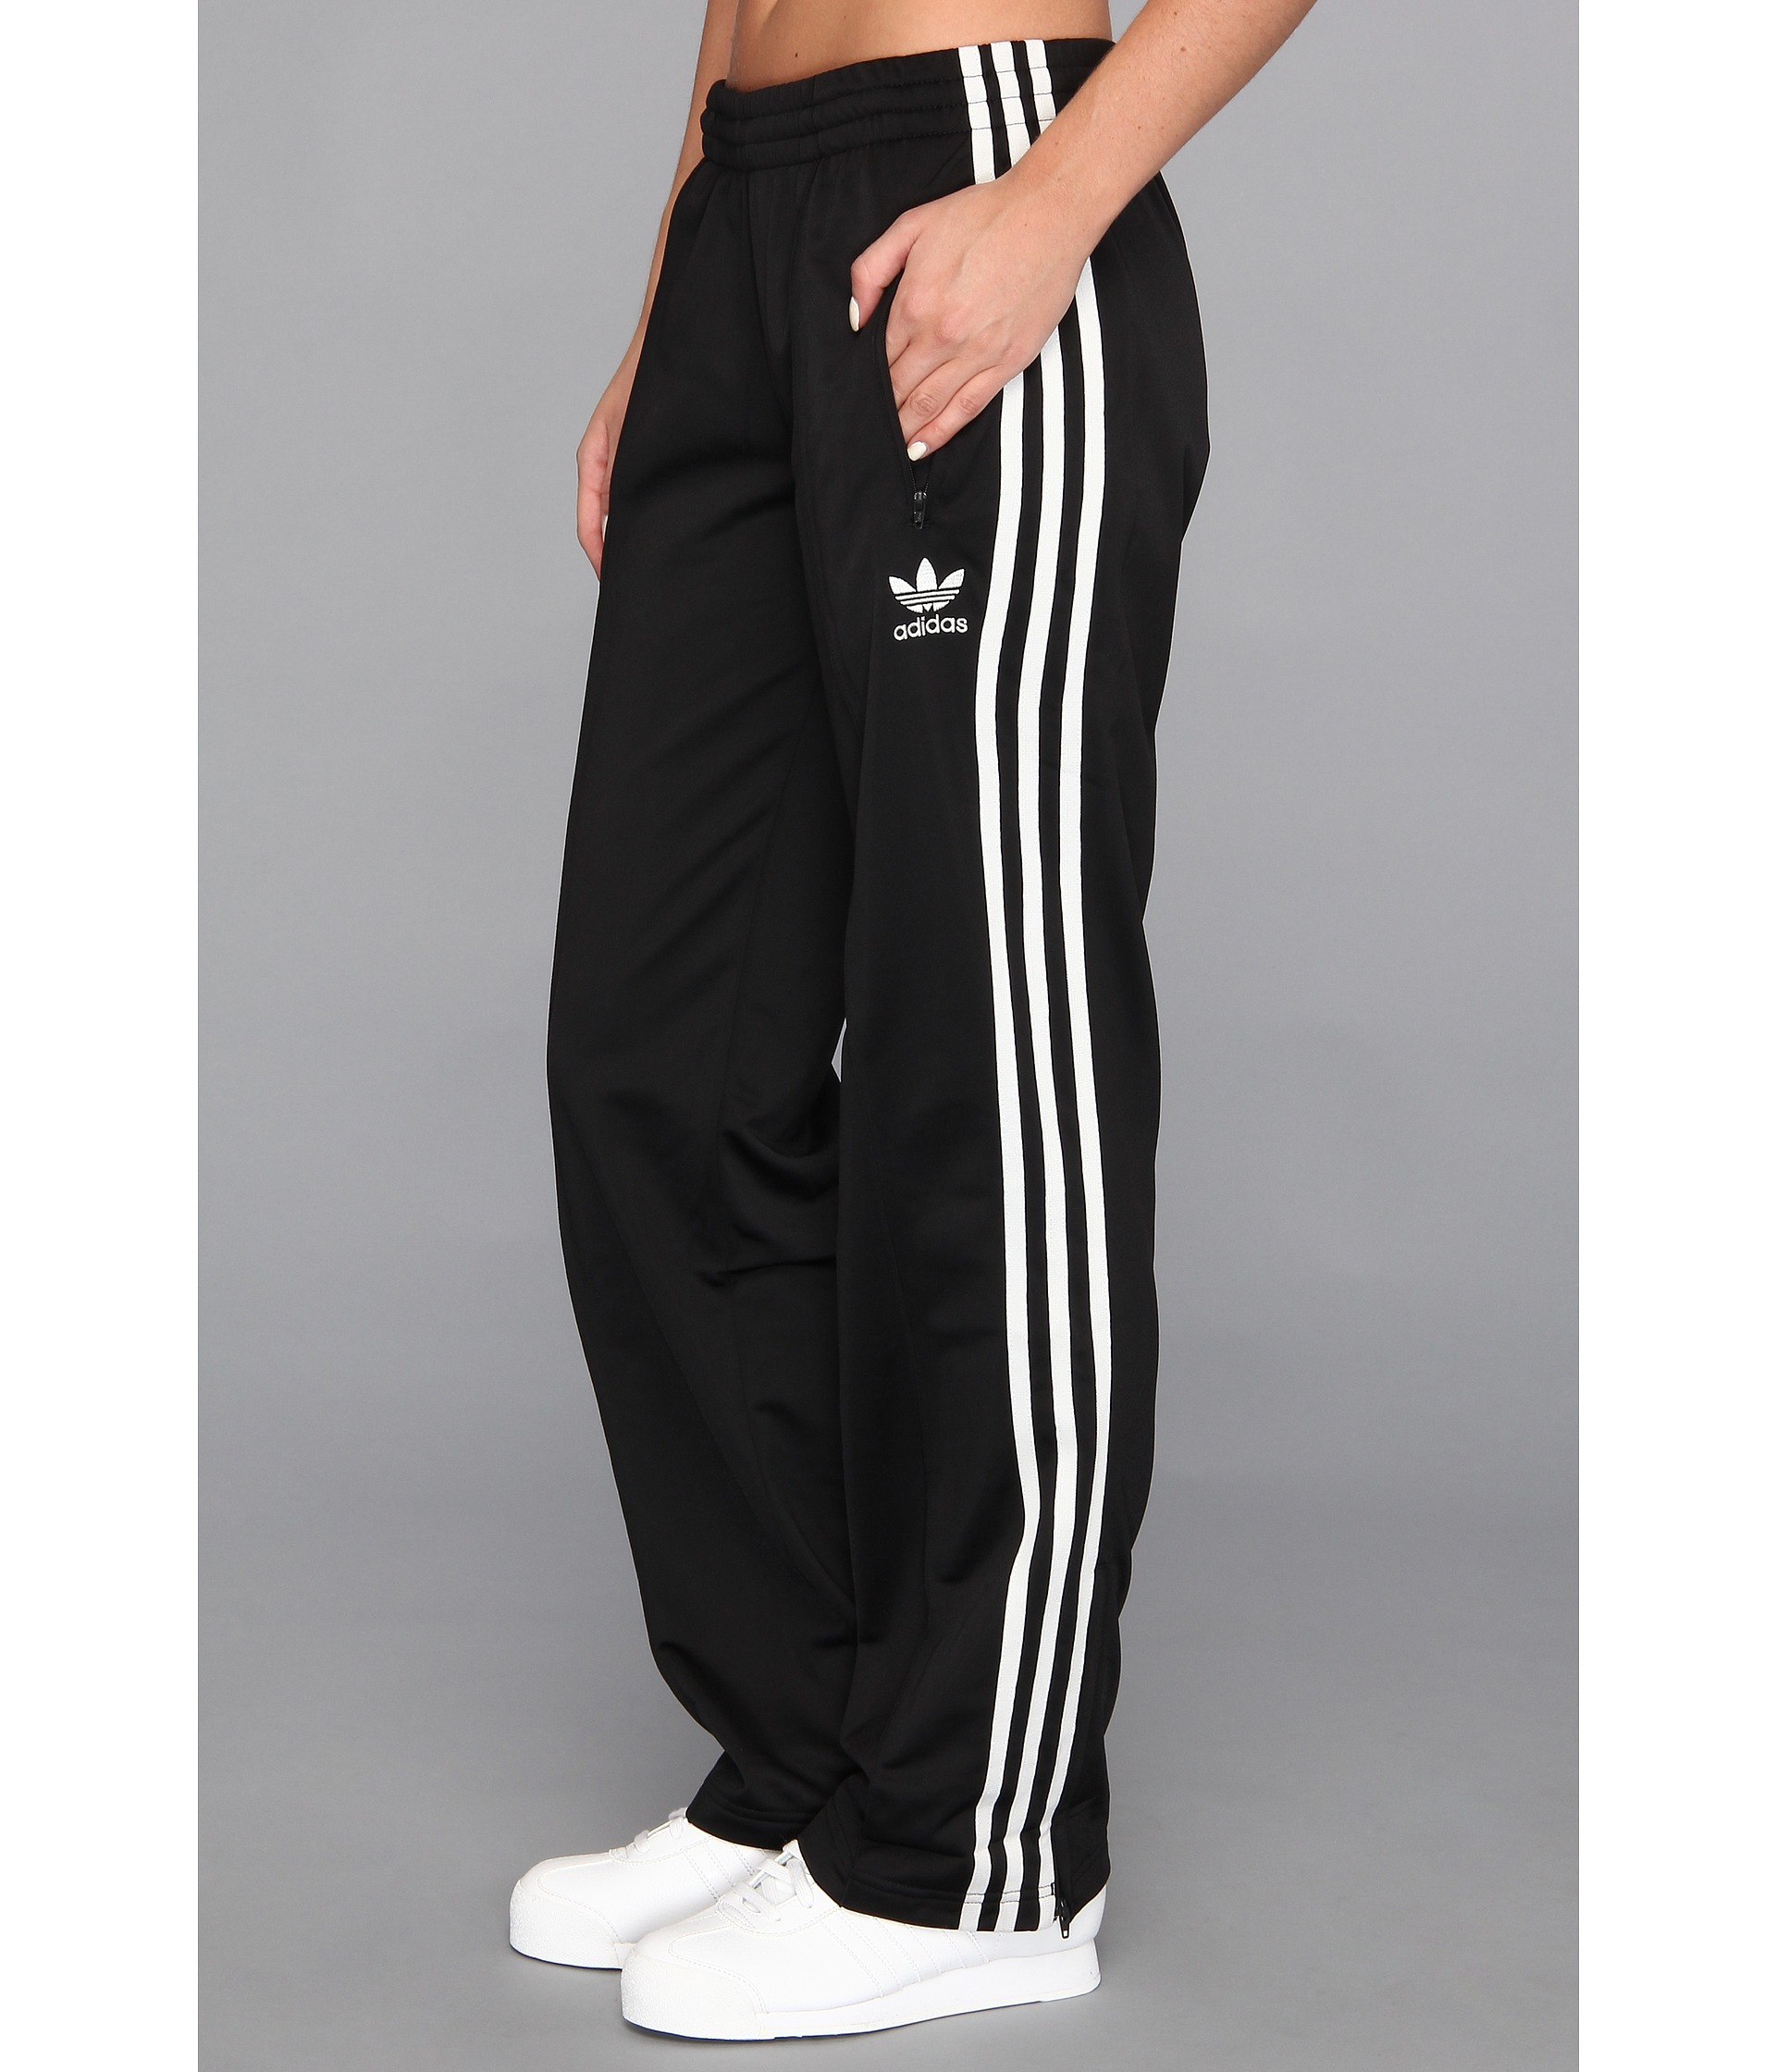 Luxury Adidas Pants Trending  Hop To It  Pinterest  Sweatpants Fashion